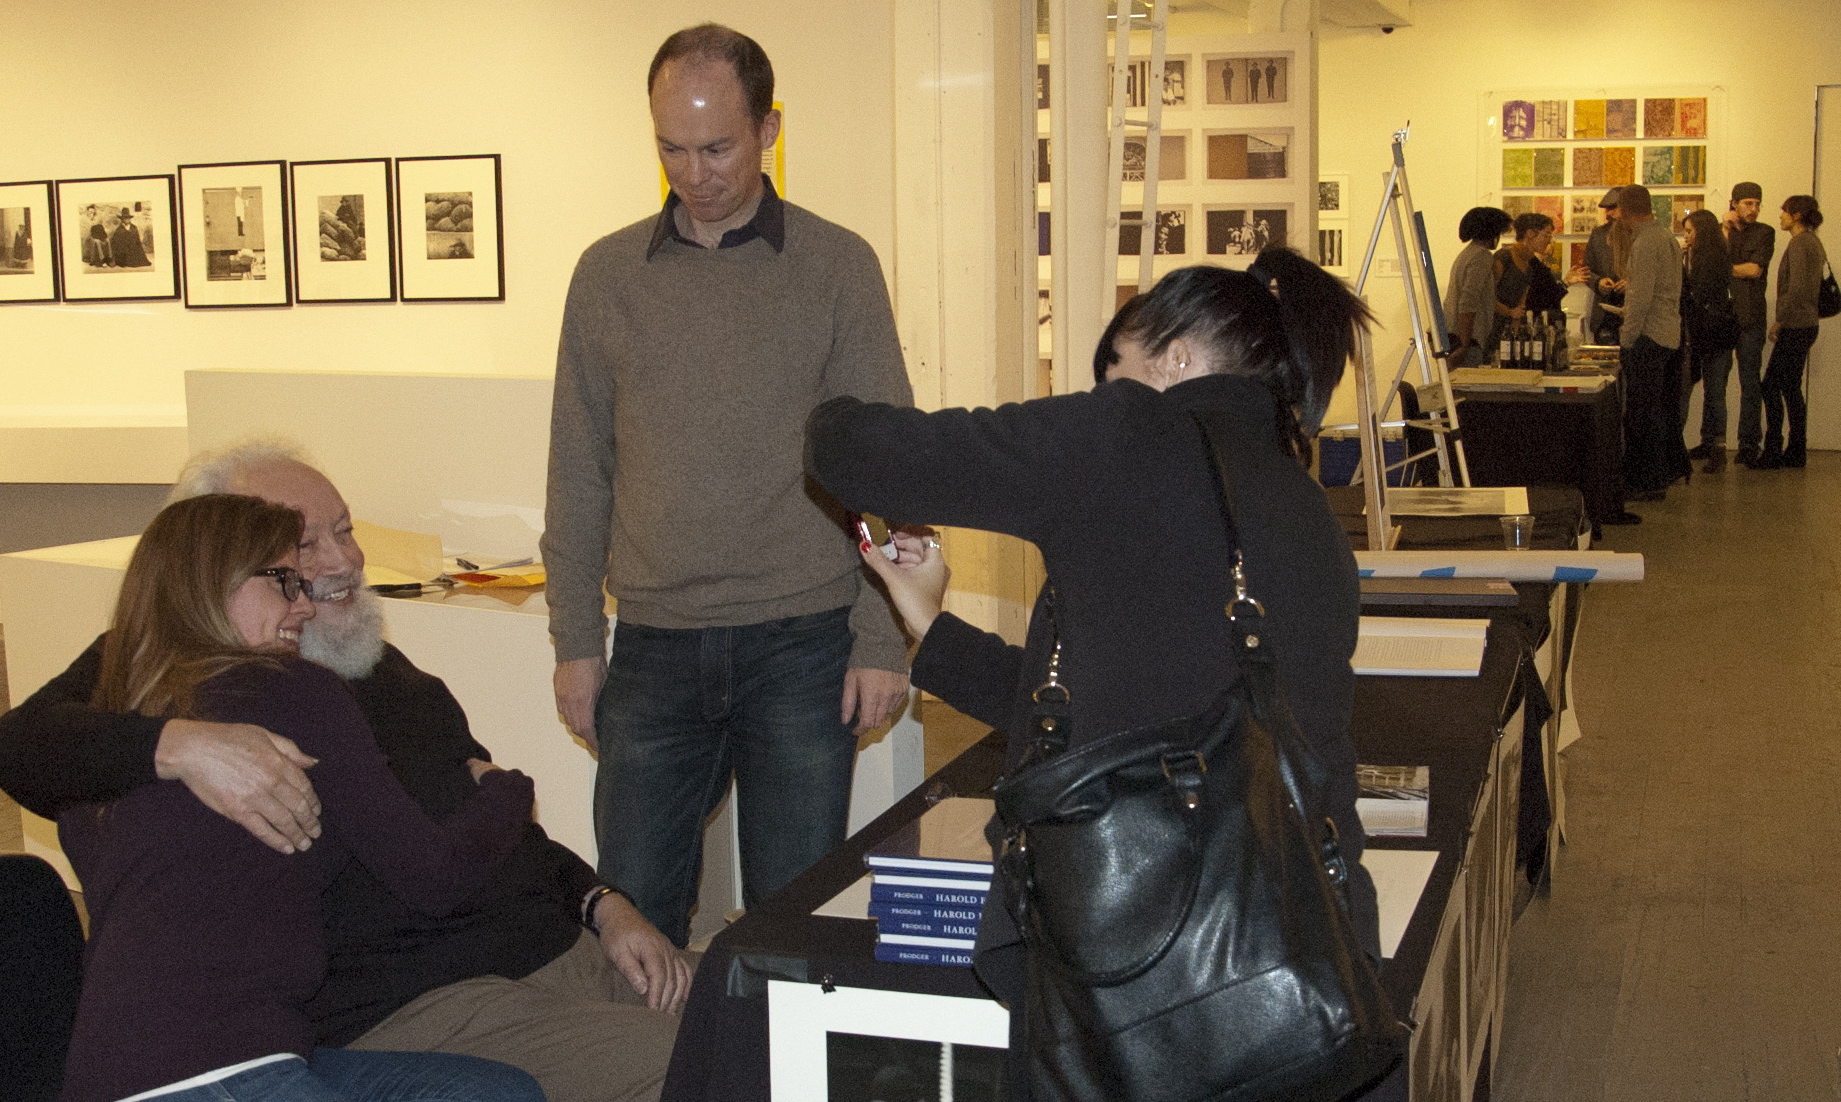 Good friend and web designer David Brabyn looks on while I give his wife Katherine a hug!